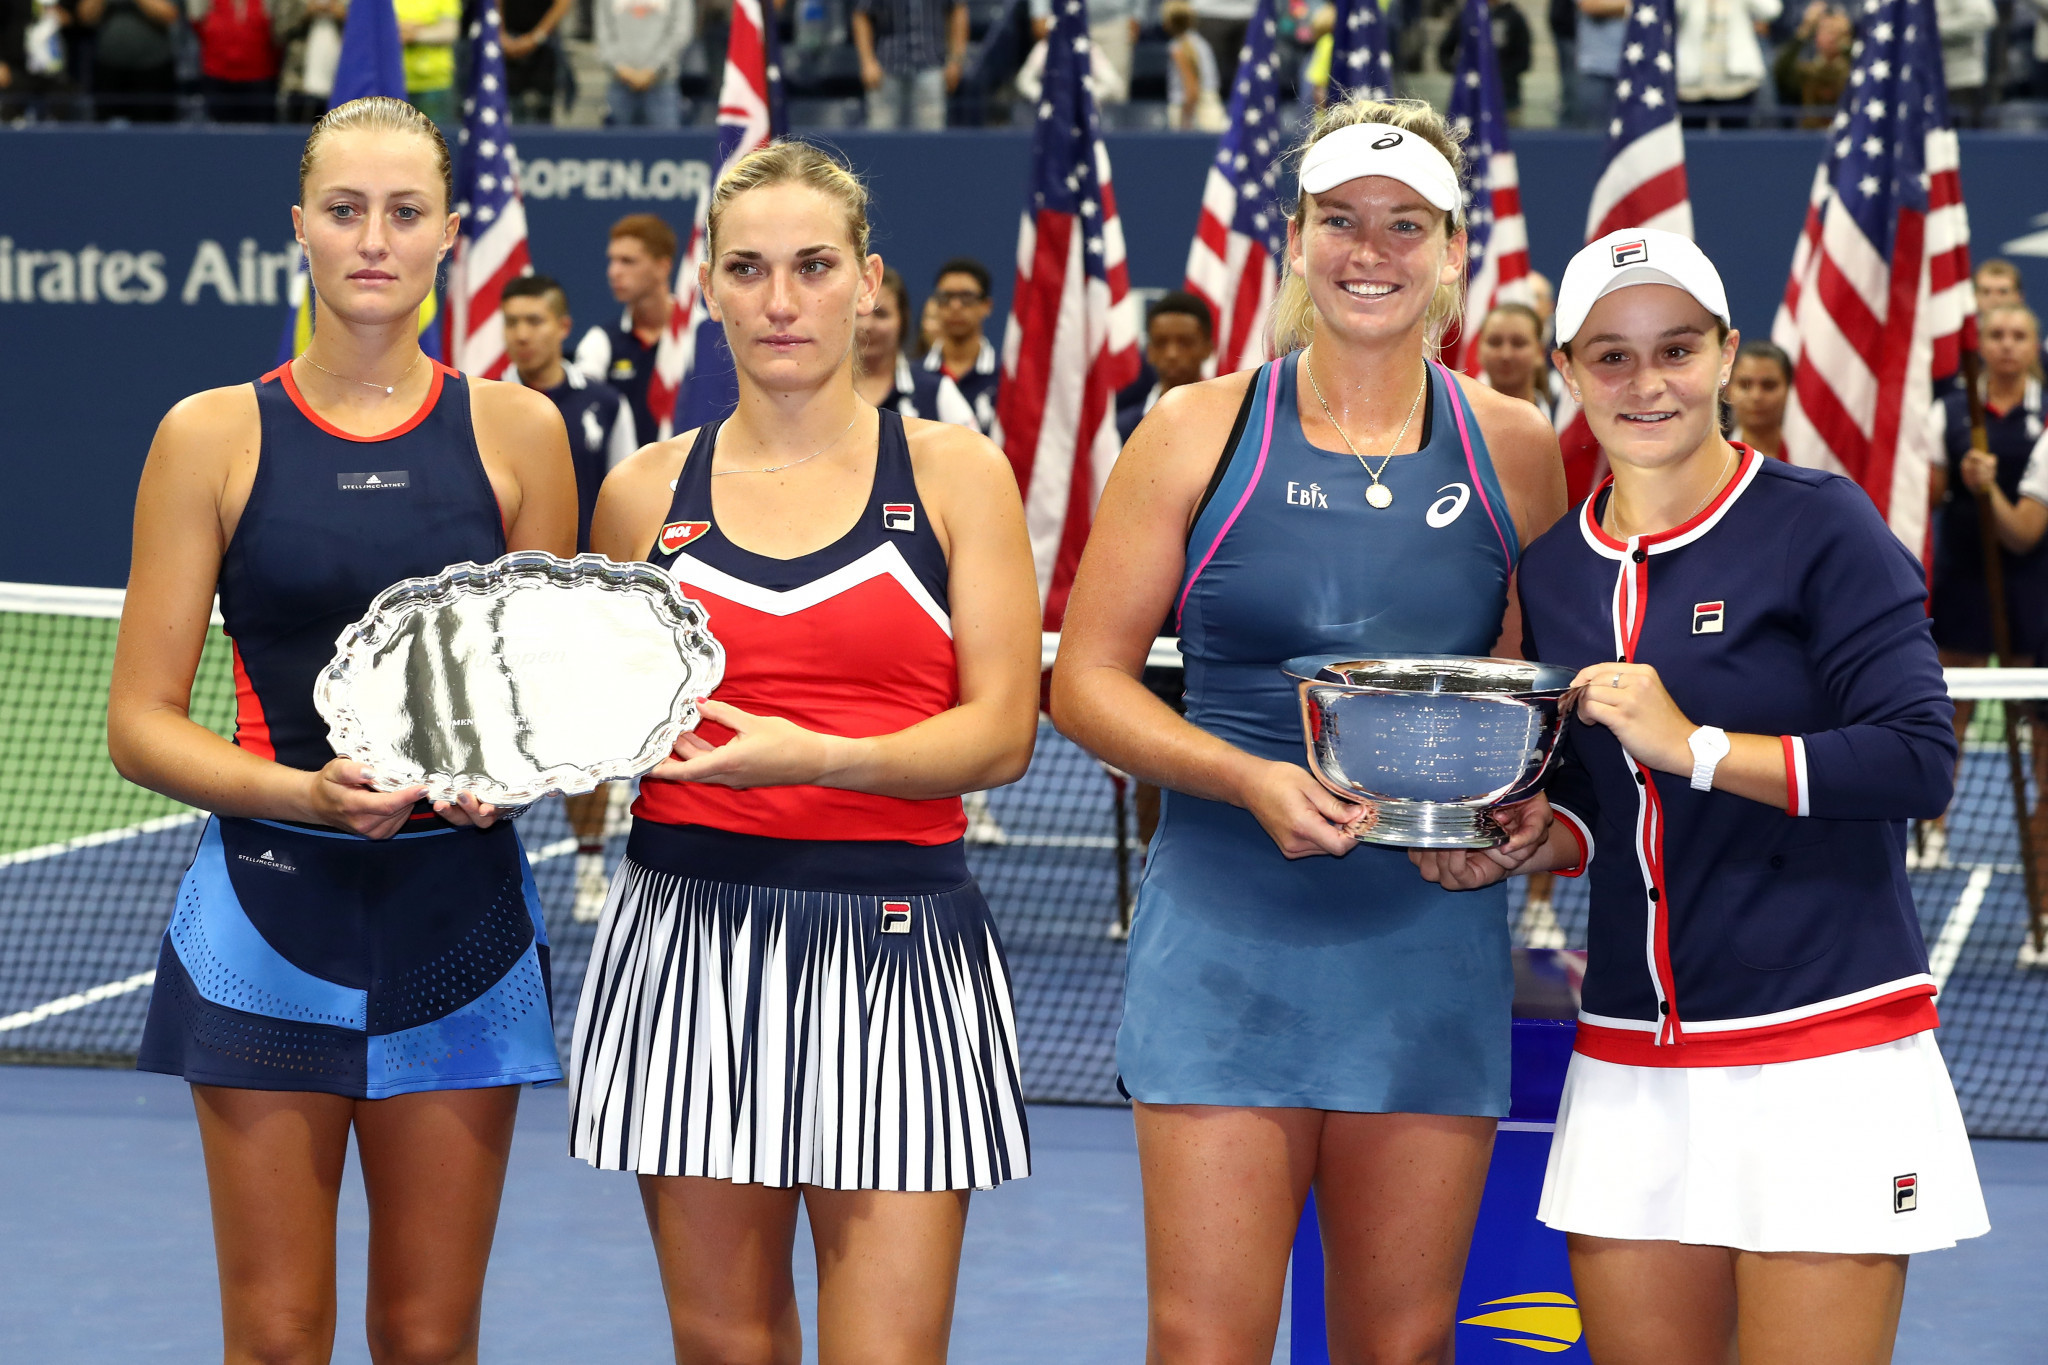 The women's double's champions claimed that they weren't allowed to give victory speeches as the men's final needed to get underway ©Getty Images